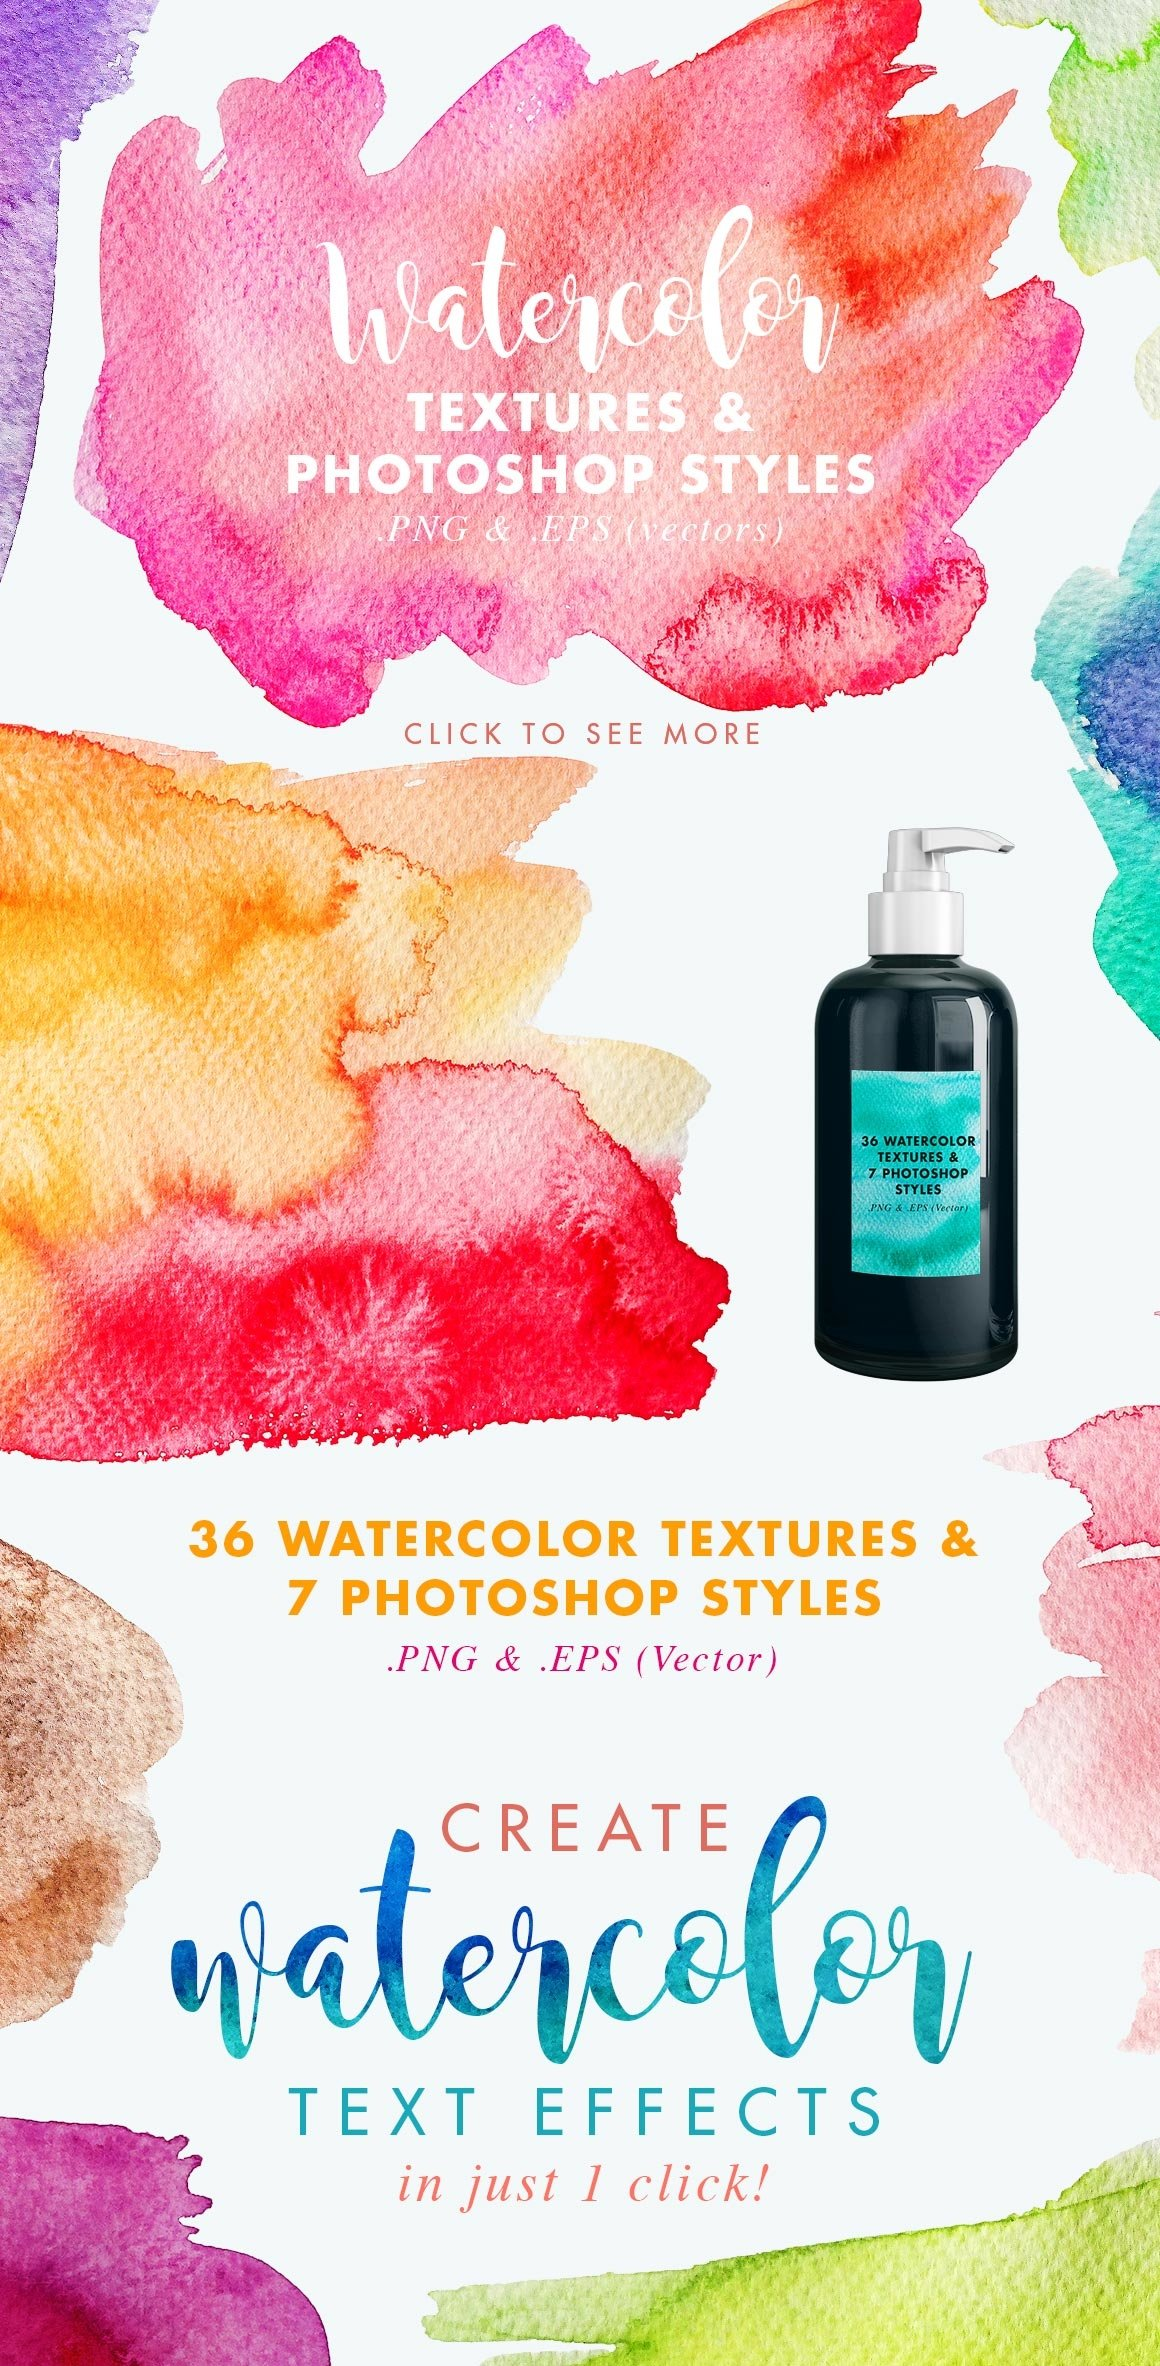 Vector & JPG Watercolor Textures & Photoshop Effect Styles example image 4